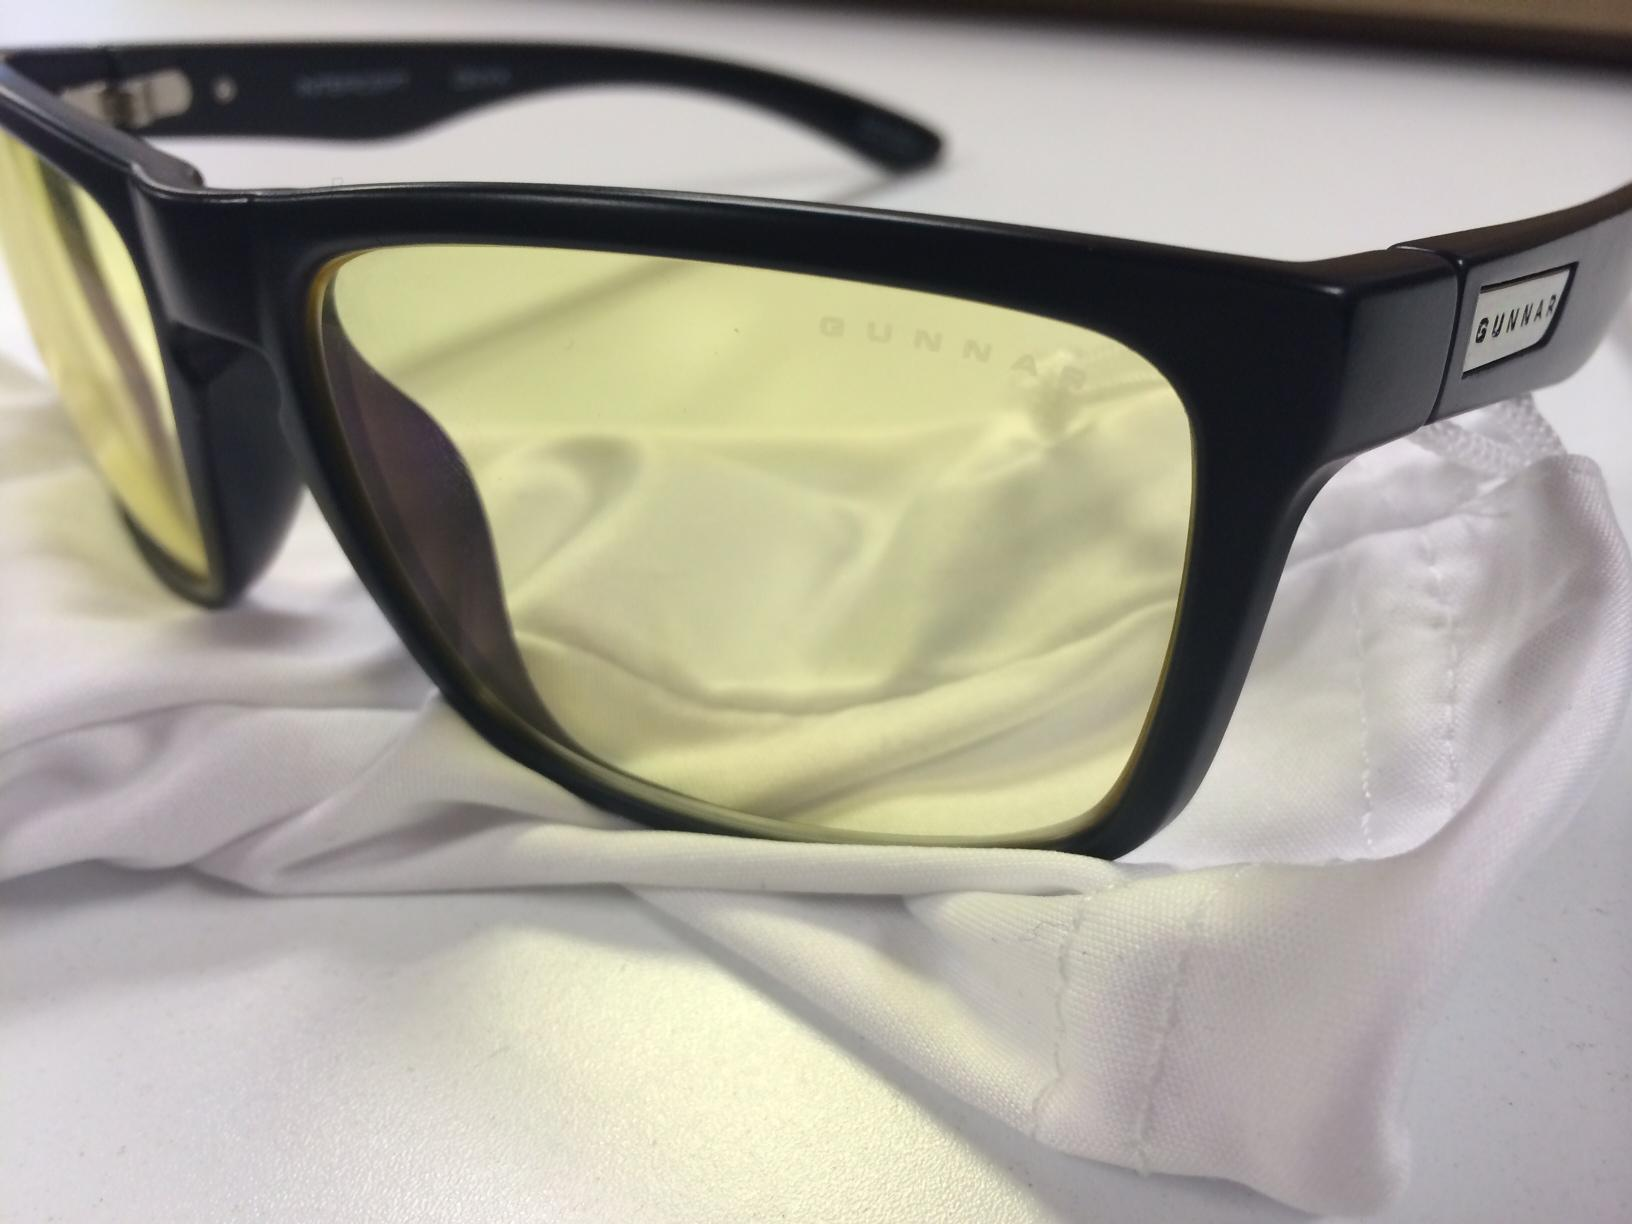 Gunnar Intercept Gaming Eyewear